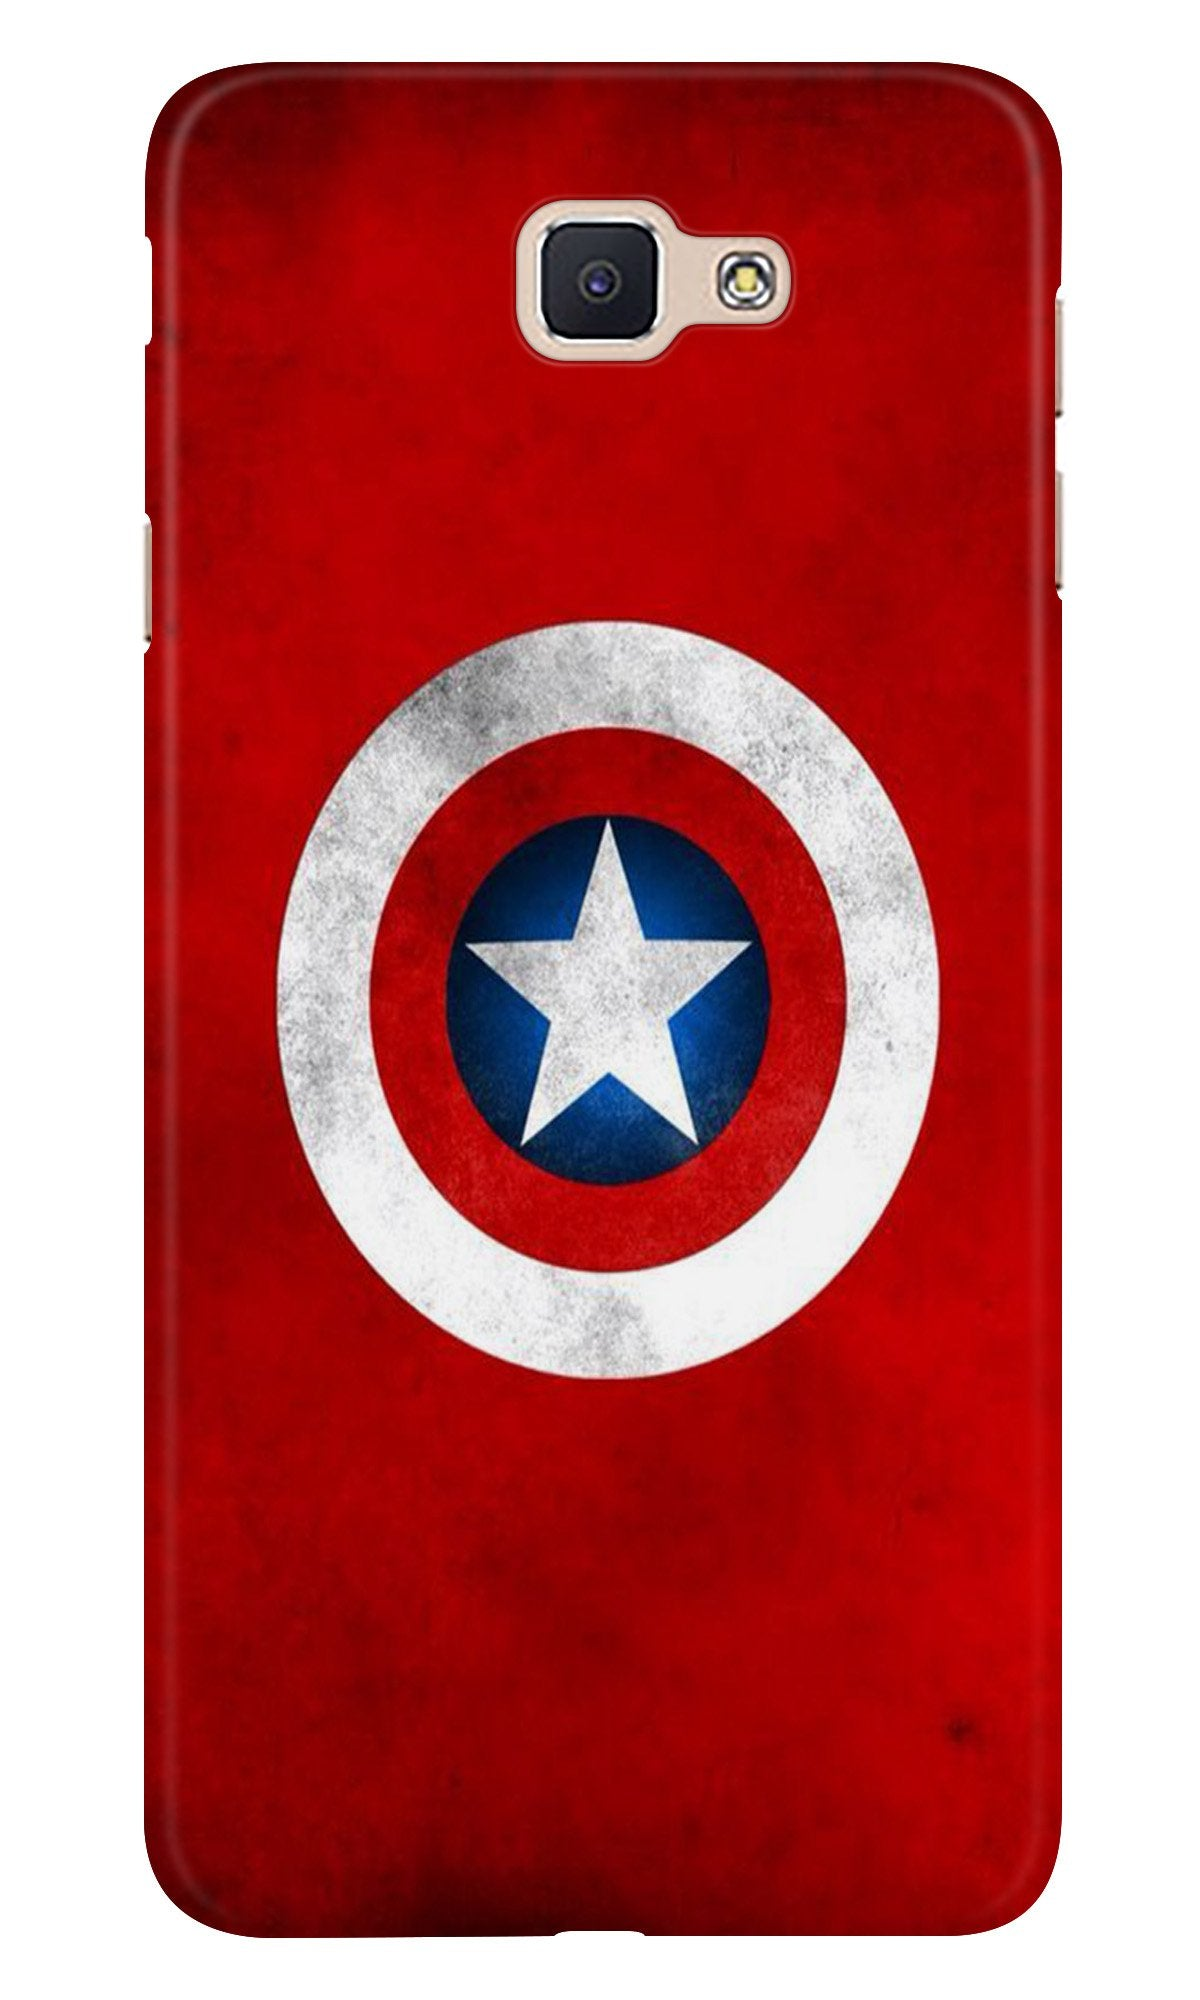 Captain America Case for Samsung Galaxy C7 Pro (Design No. 249)